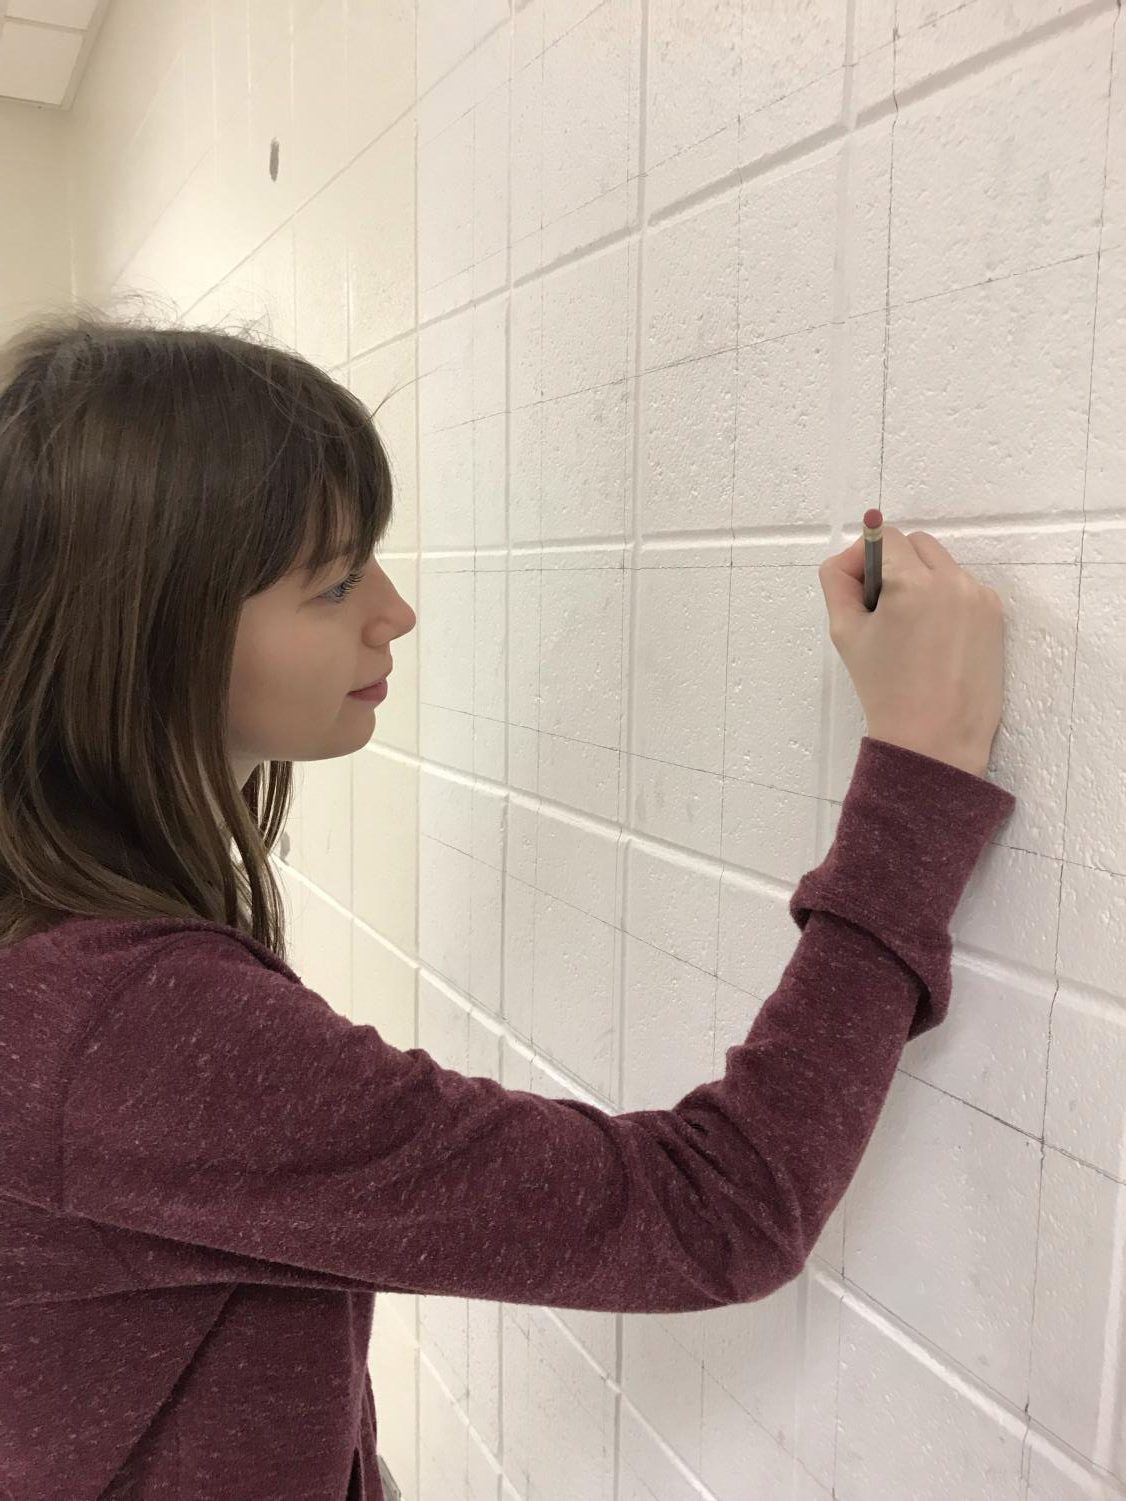 Senior Caitlyn Hudek continues to work on the grid for the mural.